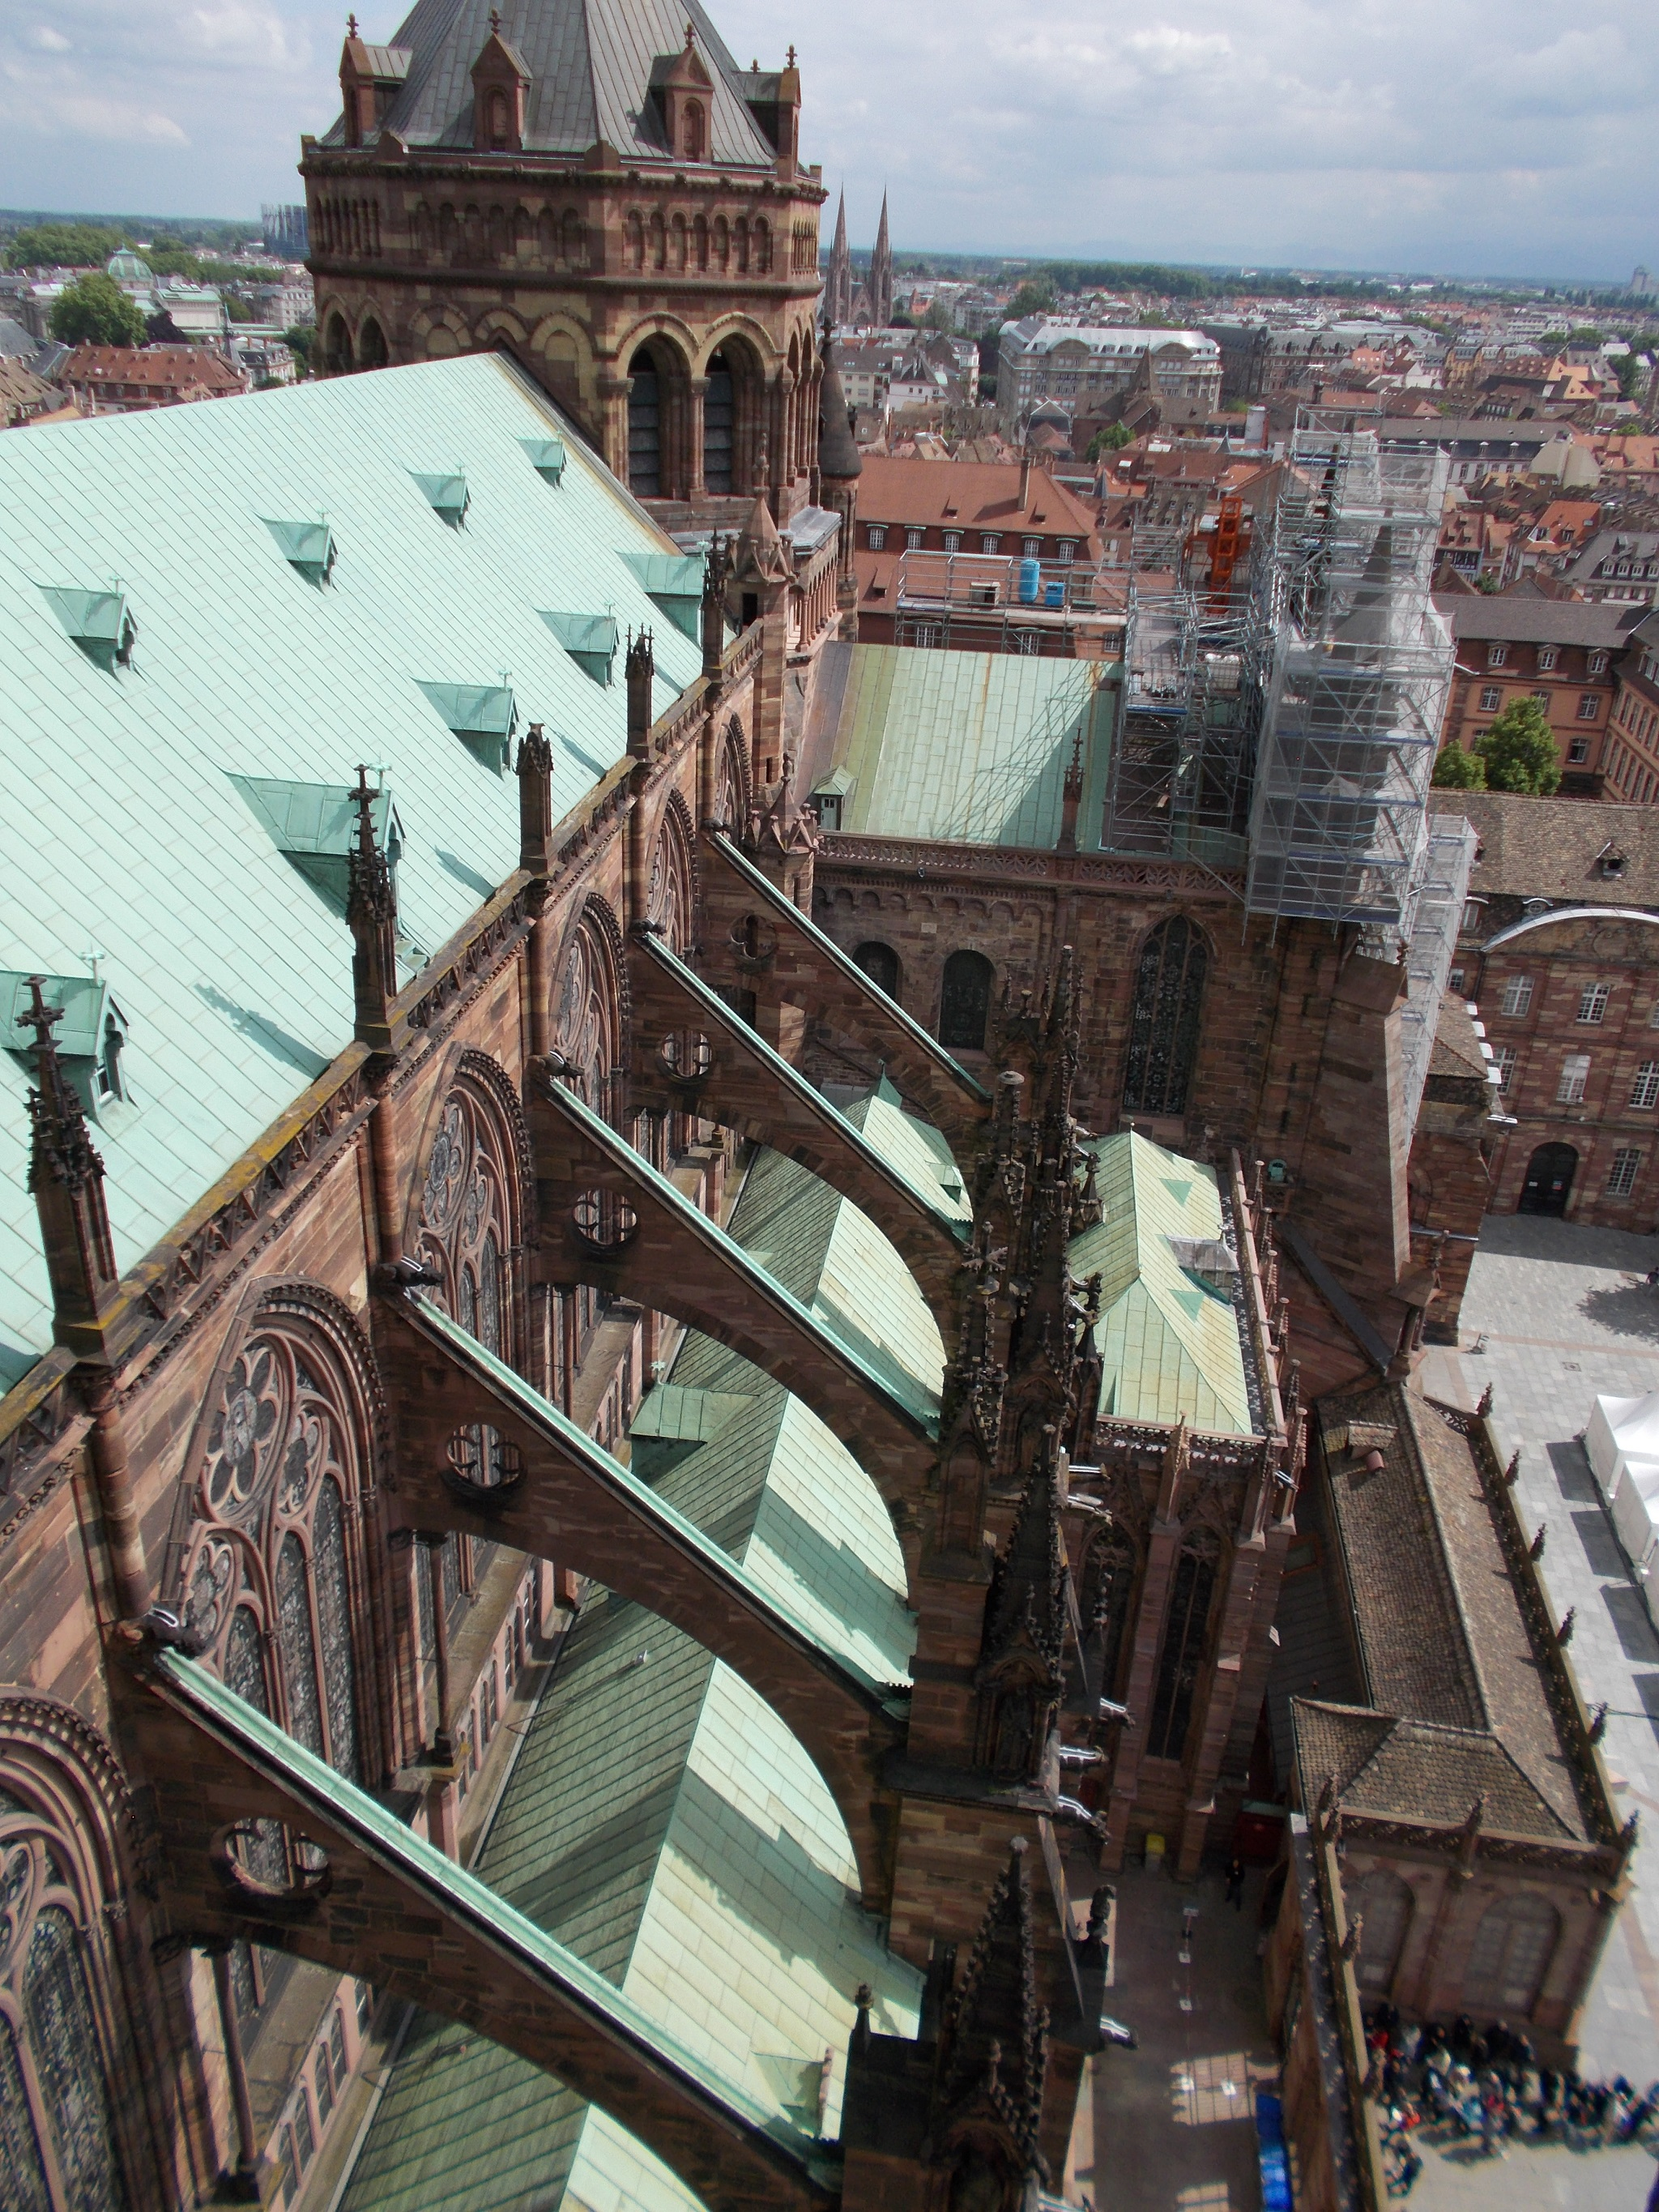 A snapshot of large flying buttresses on a large cathedral.